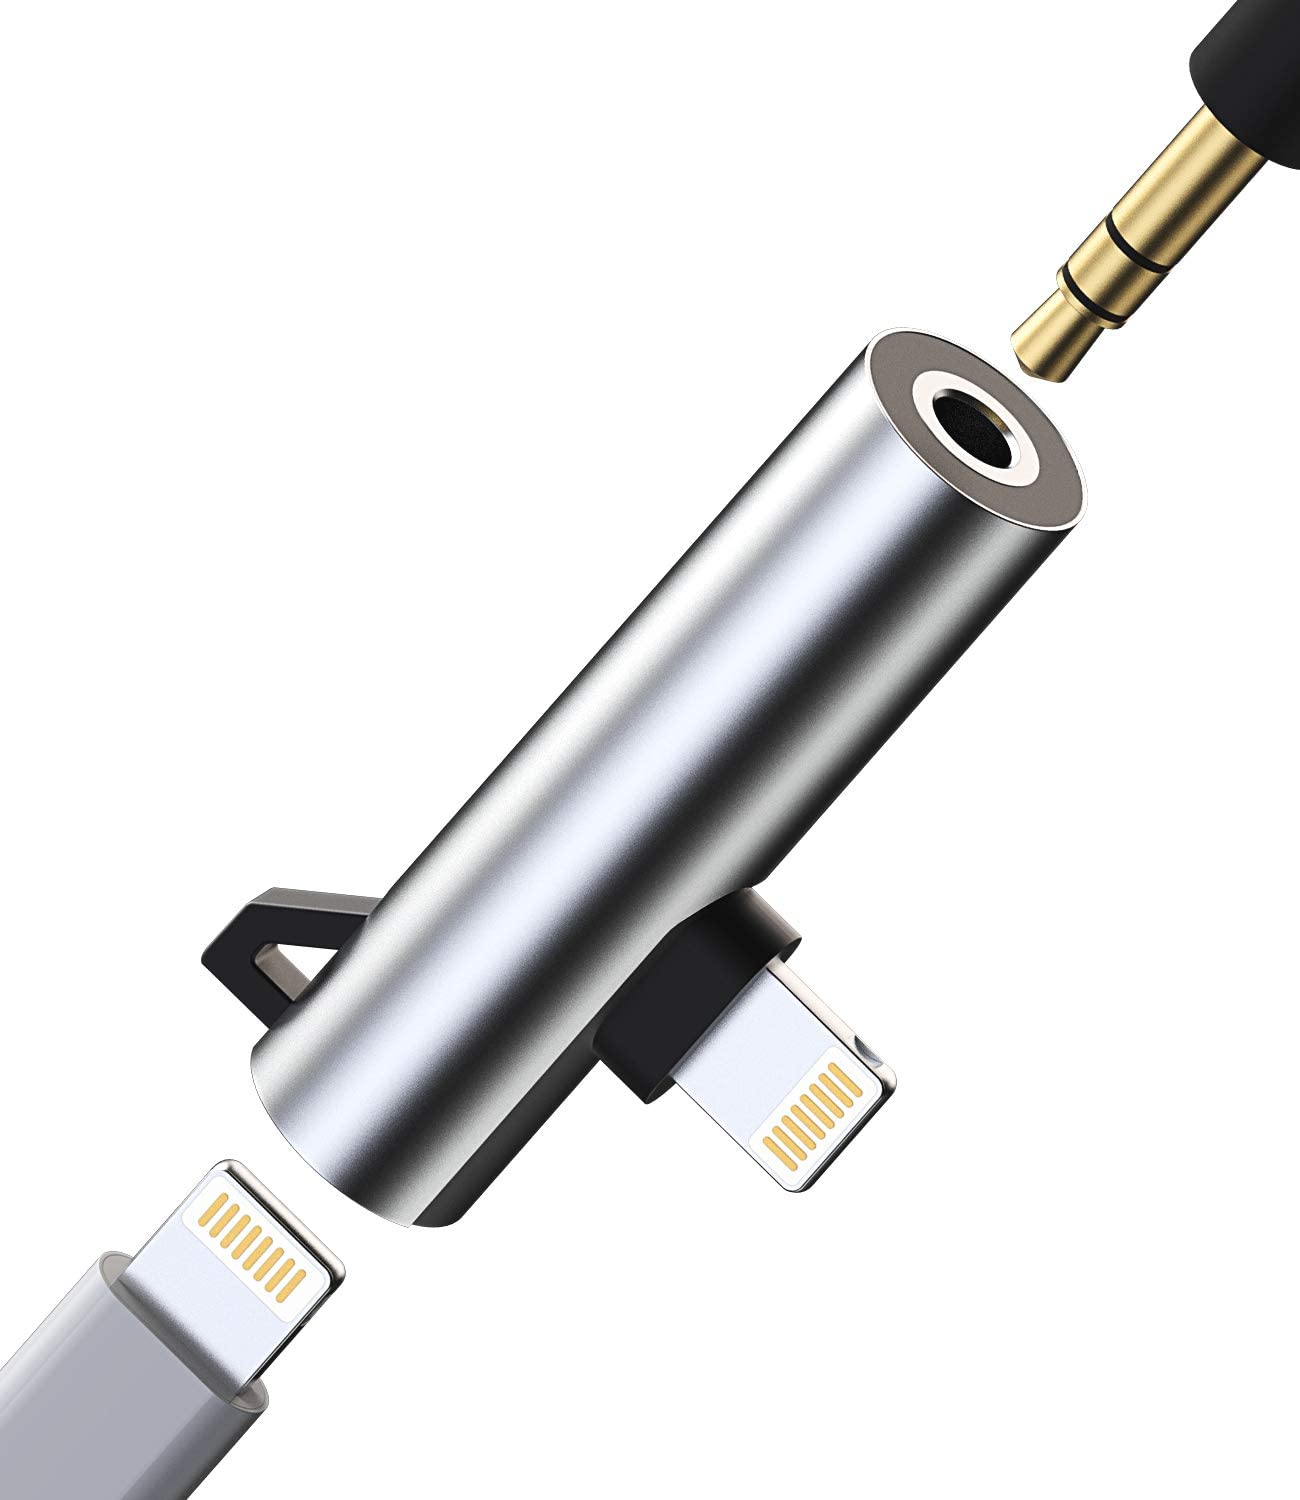 Headphone Adapter Lightning to 3.5mm AUX Audio Jack and Charger Extender Dongle Earphone Headset Splitter Compatible with iPhone 12 Mini 11 pro max xs xr x se2 7 8 Plus for Ipad Air Cable Converter